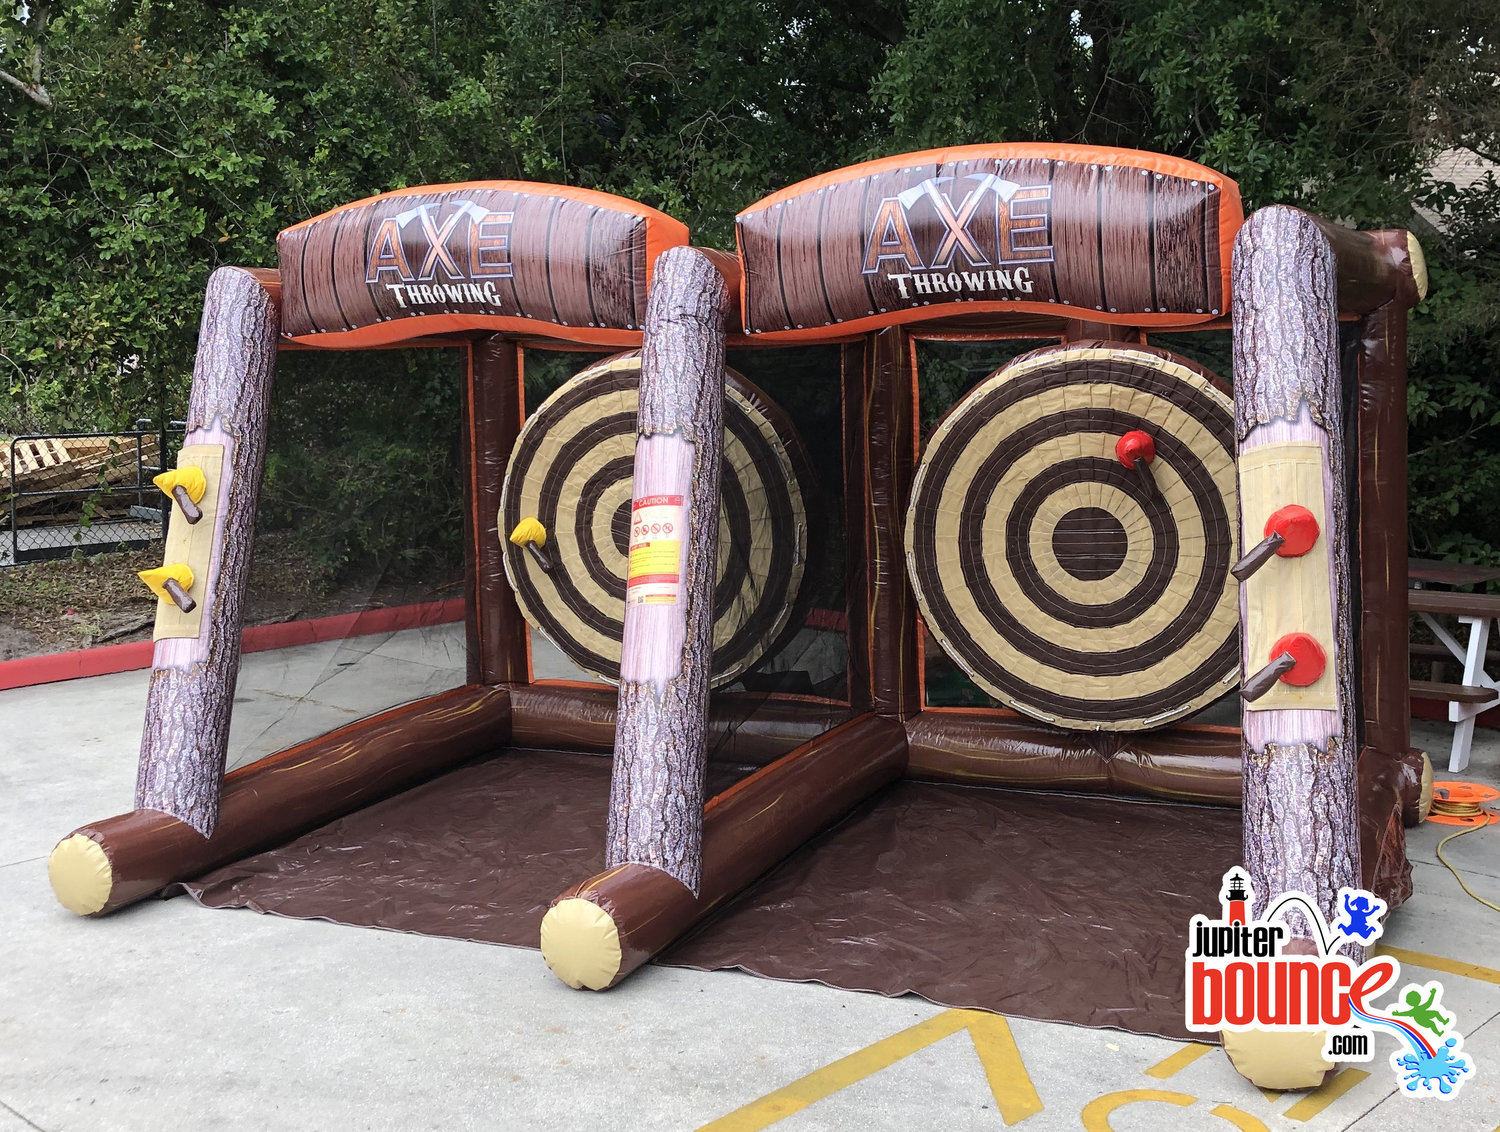 lumberjack-safeaxethrowing-inflatablepartyrental-jupiterfarms-stuart-junobeach-carlinpark-portstlucie.jpg